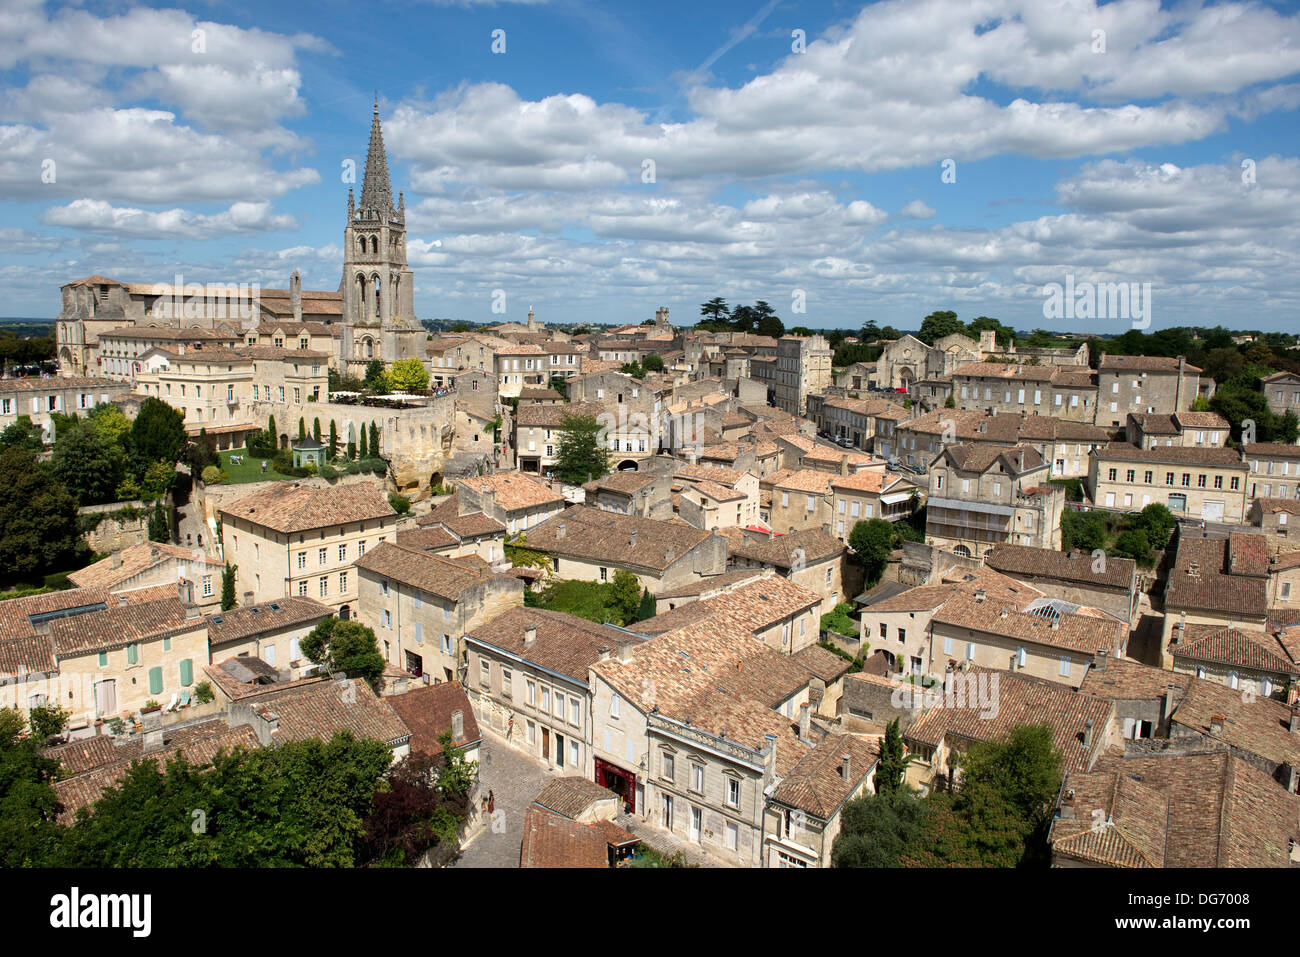 Saint Emilion and vineyards in the Bordeaux Region of France famous for its fine wines and vineyards, a World Heritage site - Stock Image